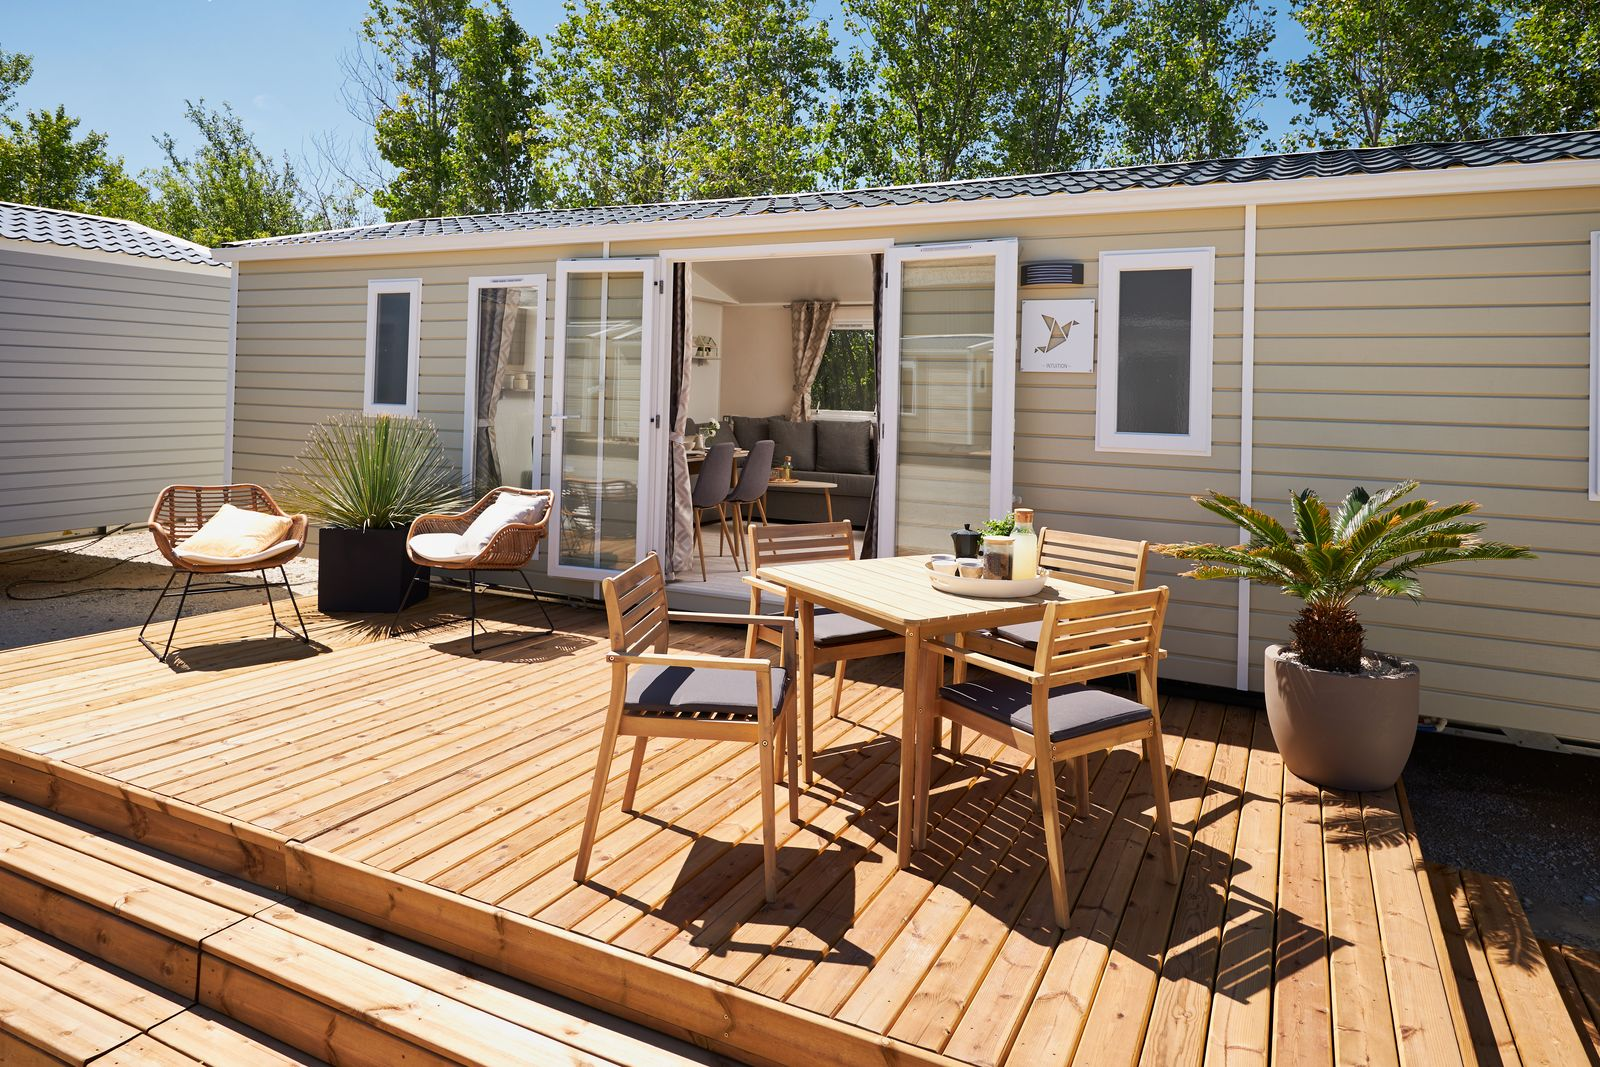 residences trigano-gamme residentielle - pro 2 -mobil home